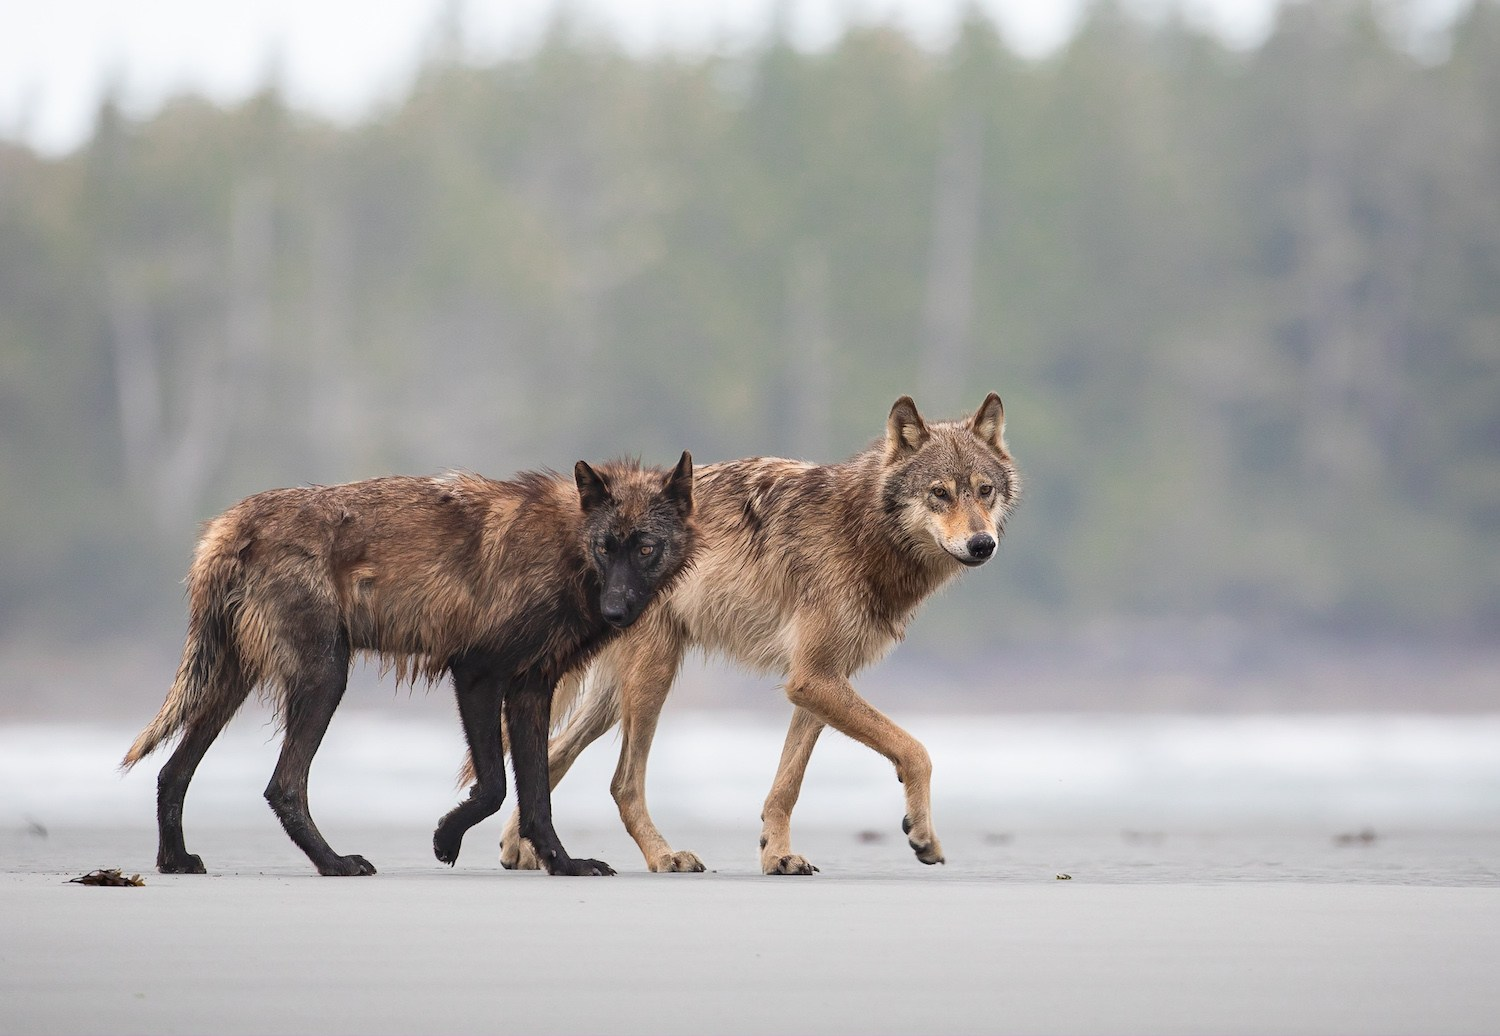 Two wolves walk side by side on the beach.